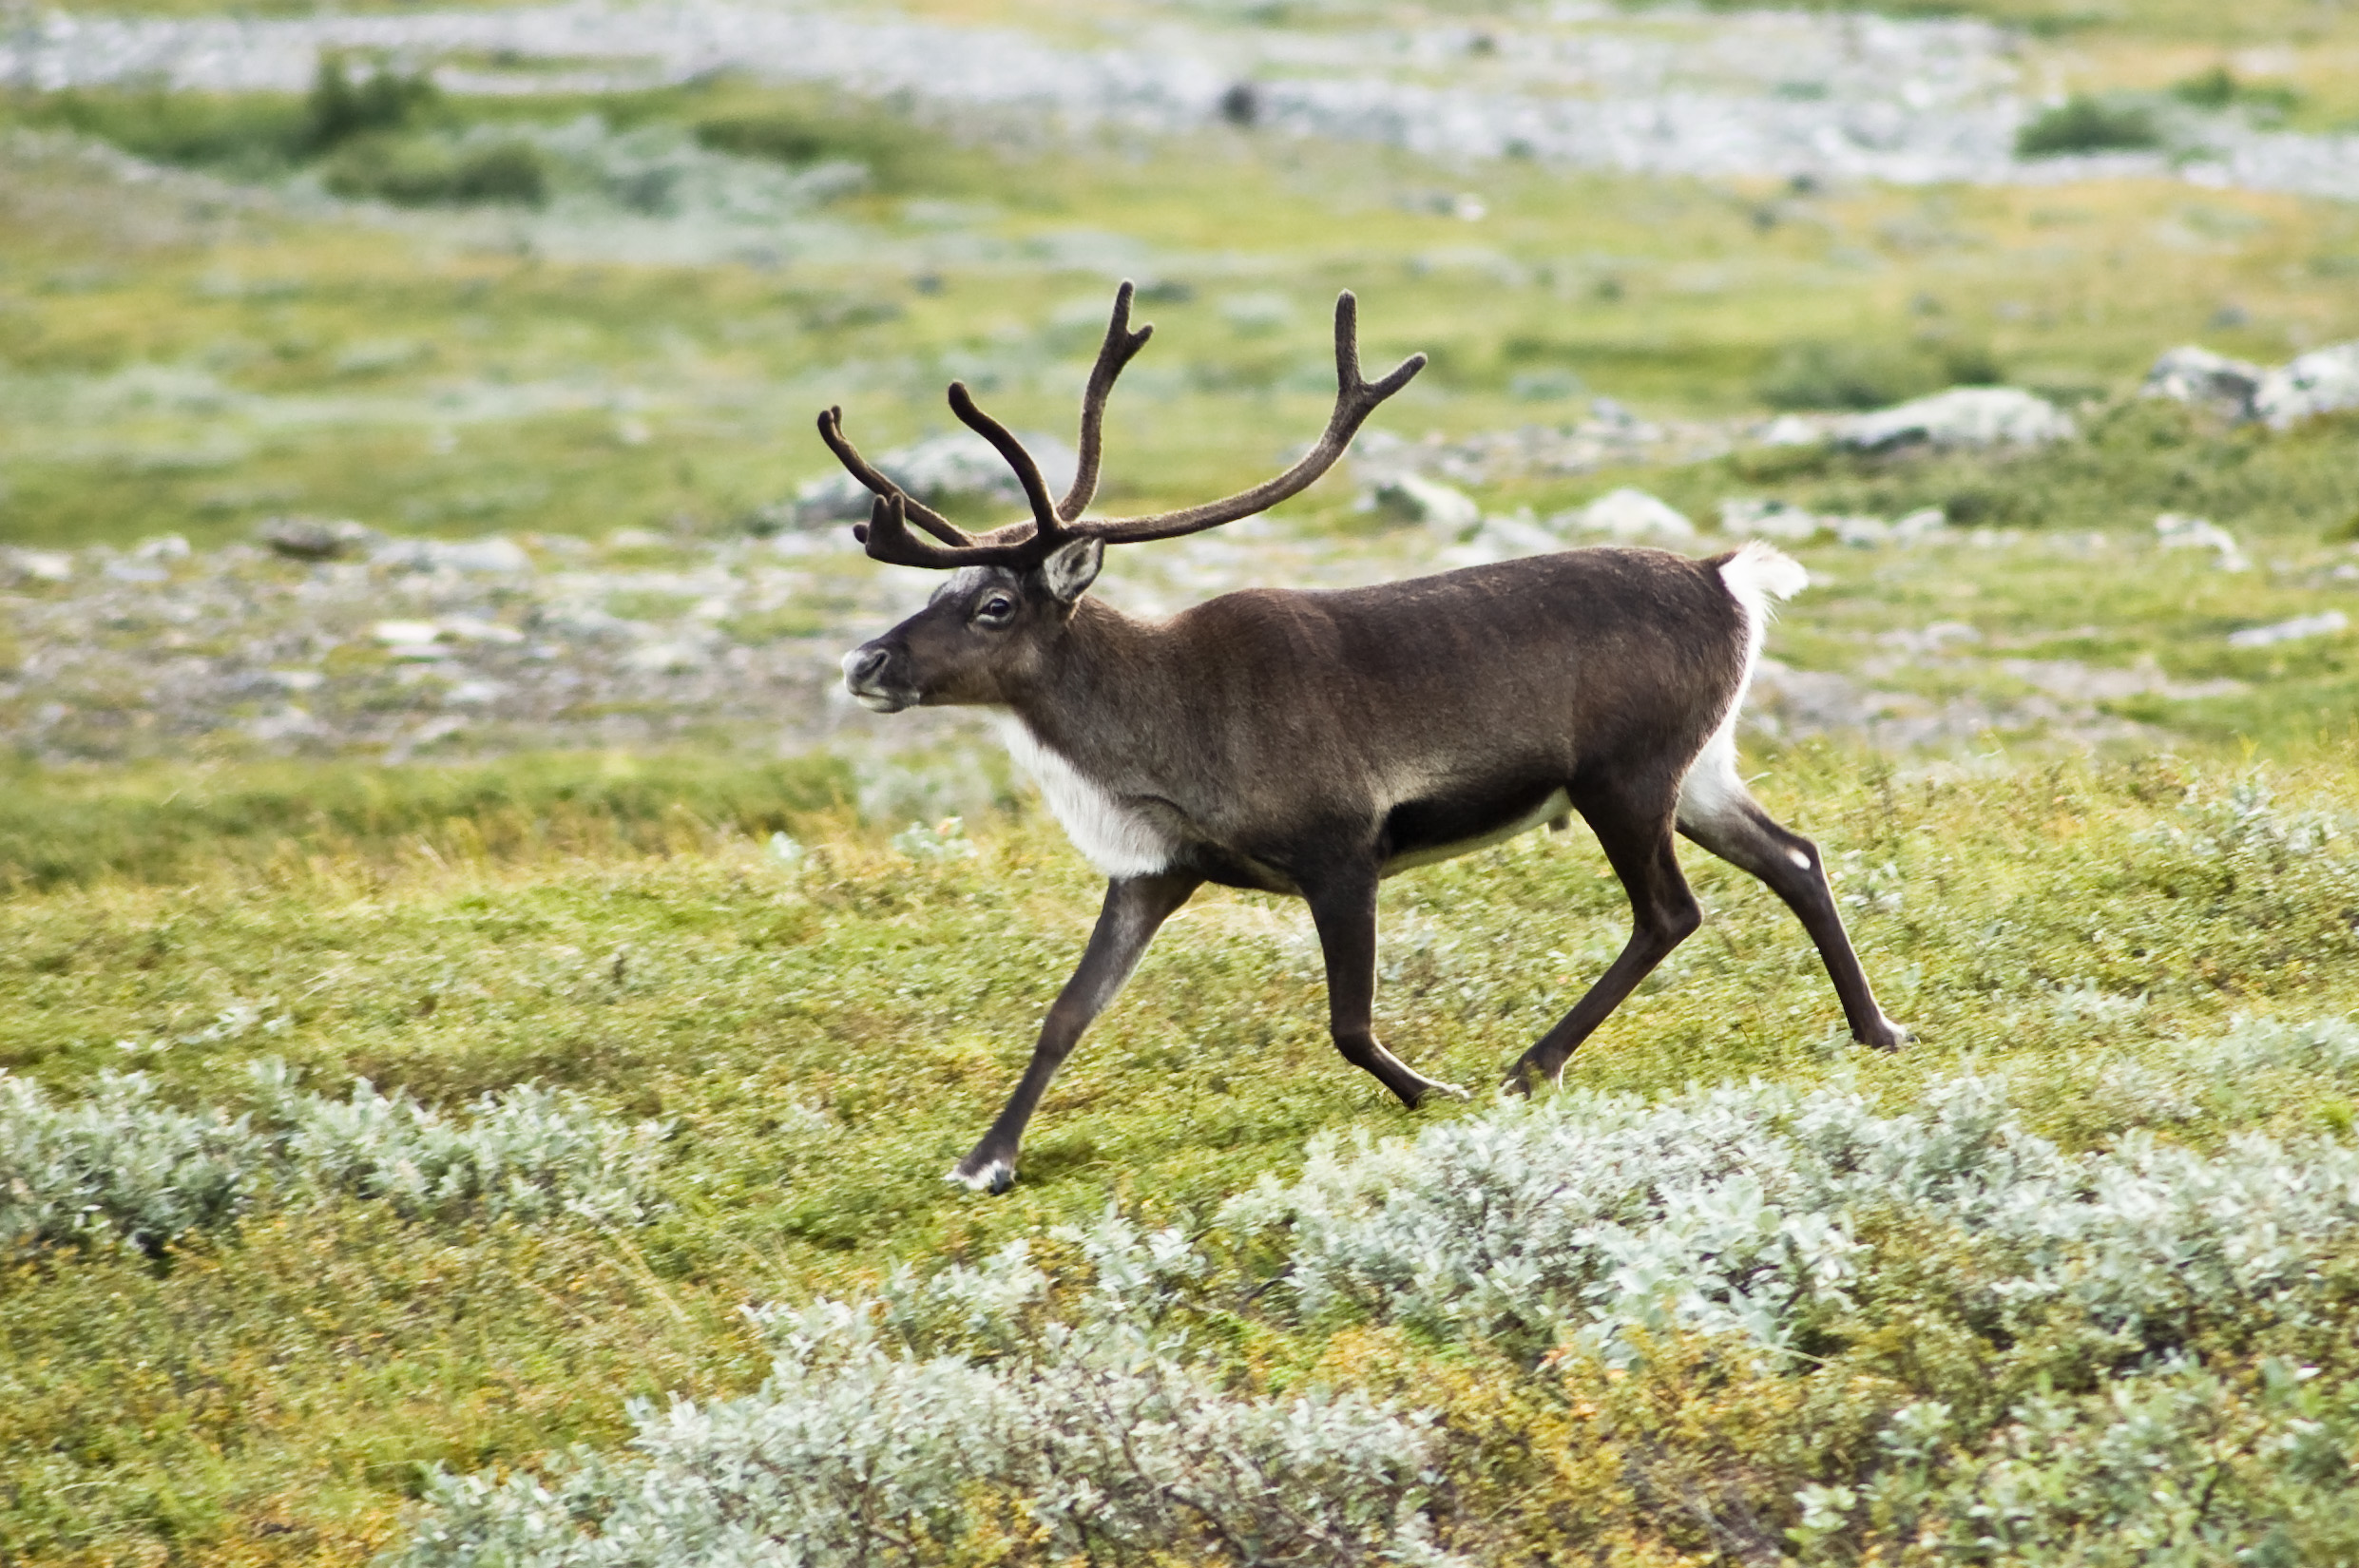 Reindeer   Alexandre Buisse/Wikimedia Commons  [ CC BY-SA 3.0 ]